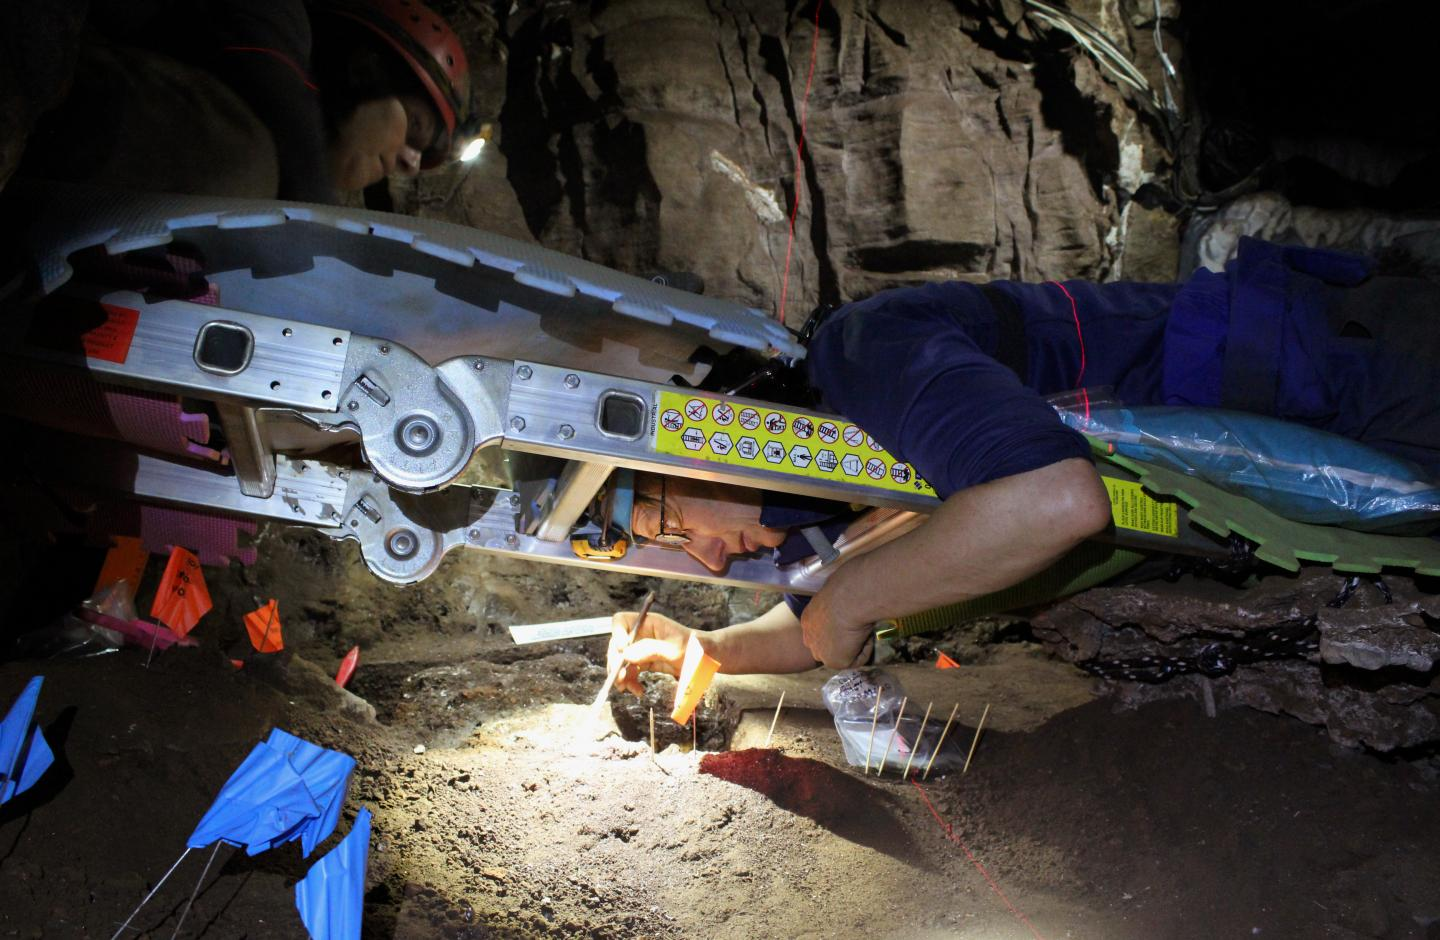 New DinalediVR App Explores South African Cave Where Some of Science's Most Famous Ancient Human